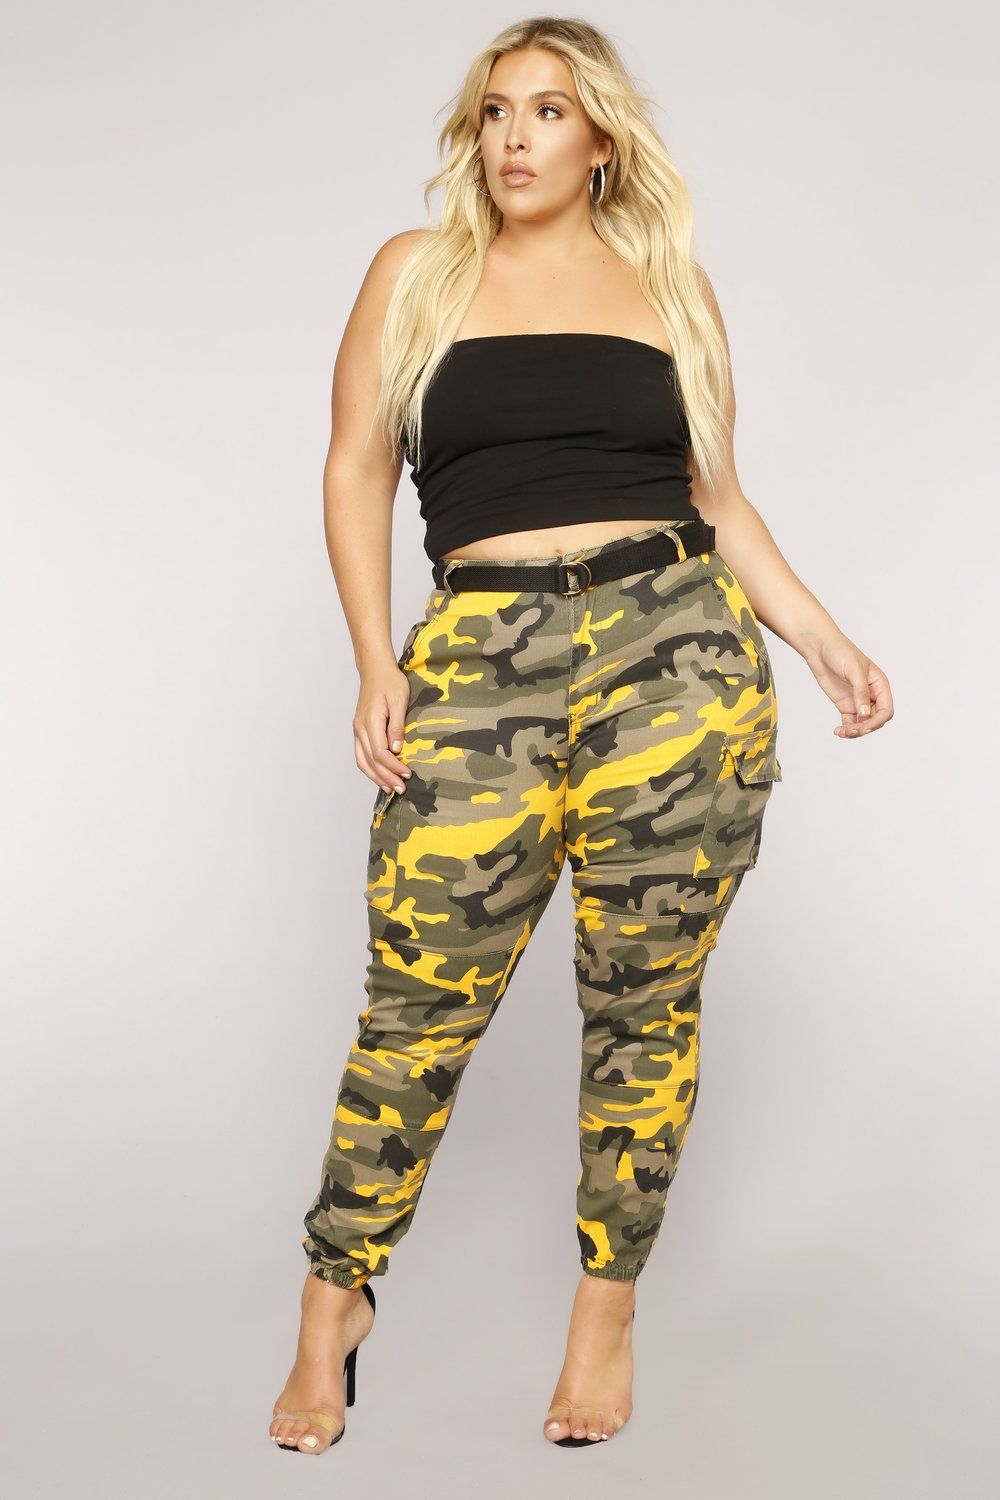 a5225ee58e98e Don't Call Me High Rise Joggers - Yellow Camo in 2019 | My STYLE ...